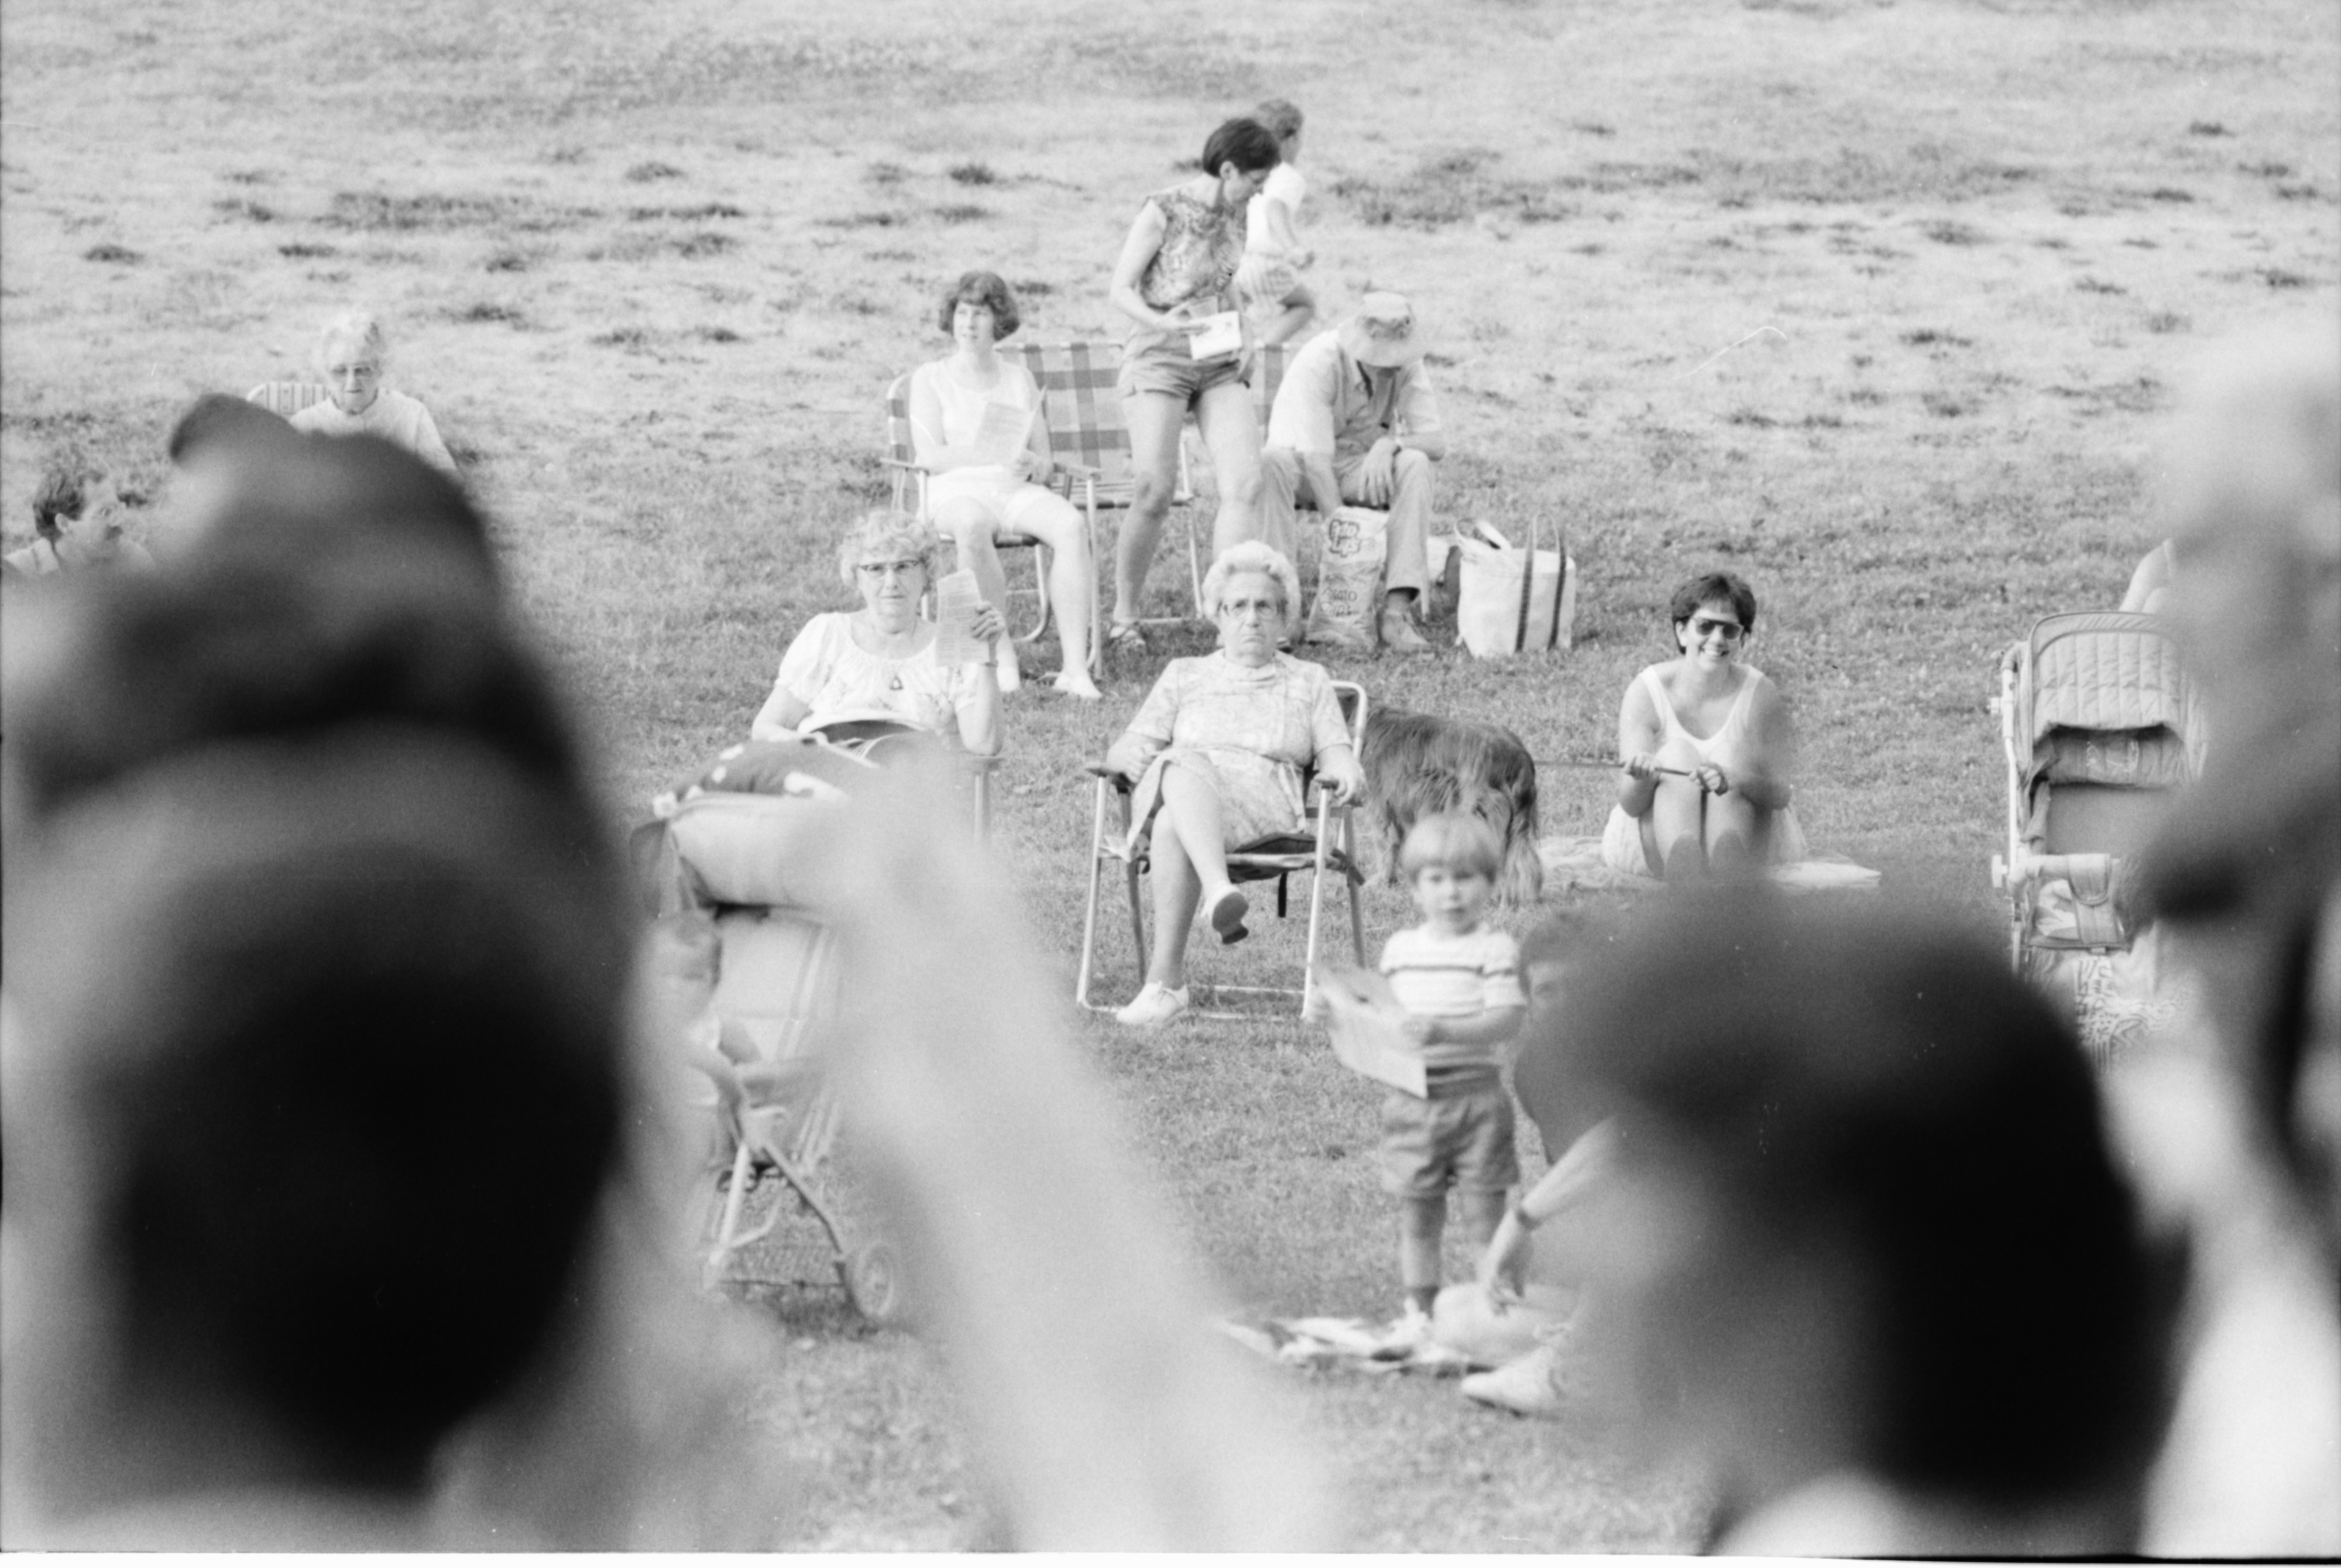 Attendees watch the Ann Arbor Civic Band plays at West Park in 90-degree heat, July, 1988 image